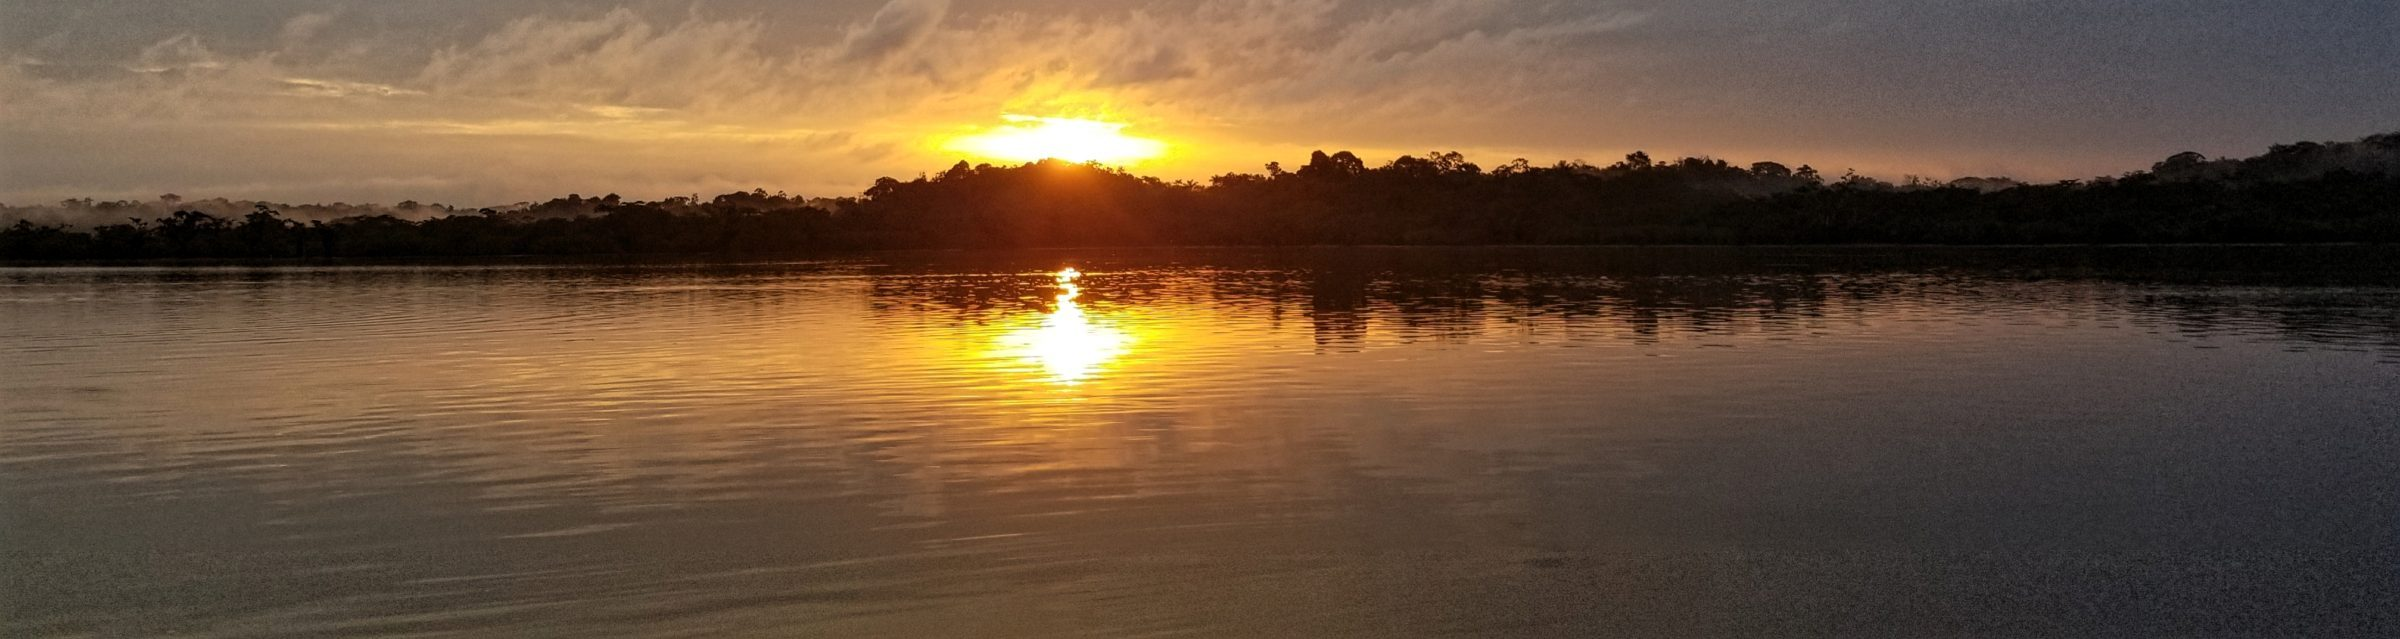 Cuyabeno — What to Expect in Ecuador's Amazon